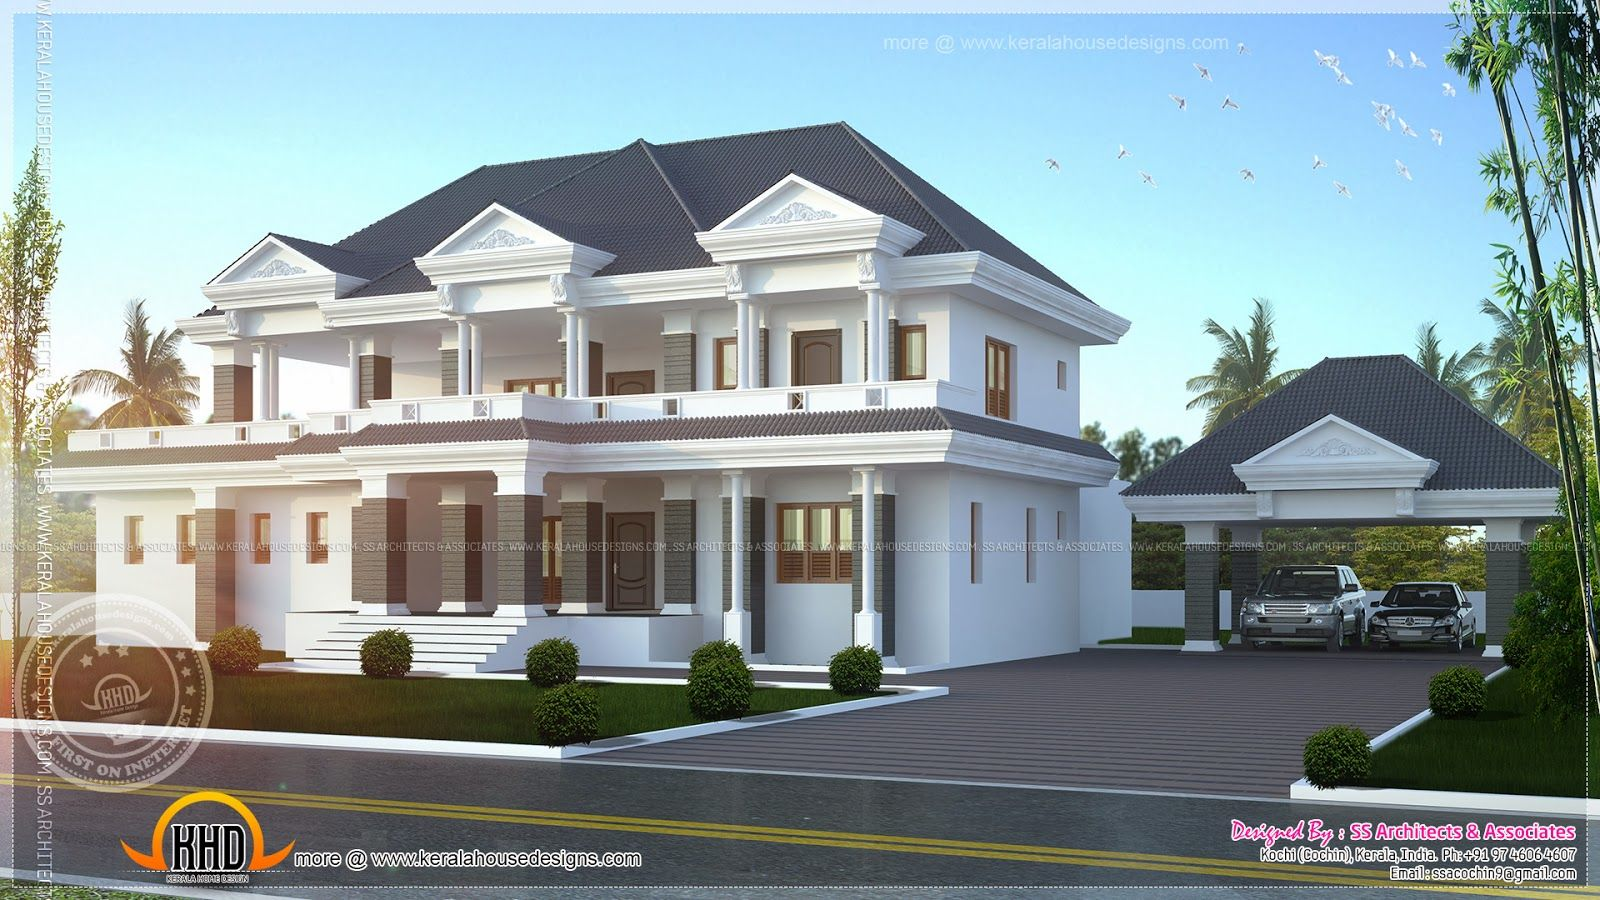 Contemporary Modern Home Plans modern nalukettu house plans joy studio design gallery design home